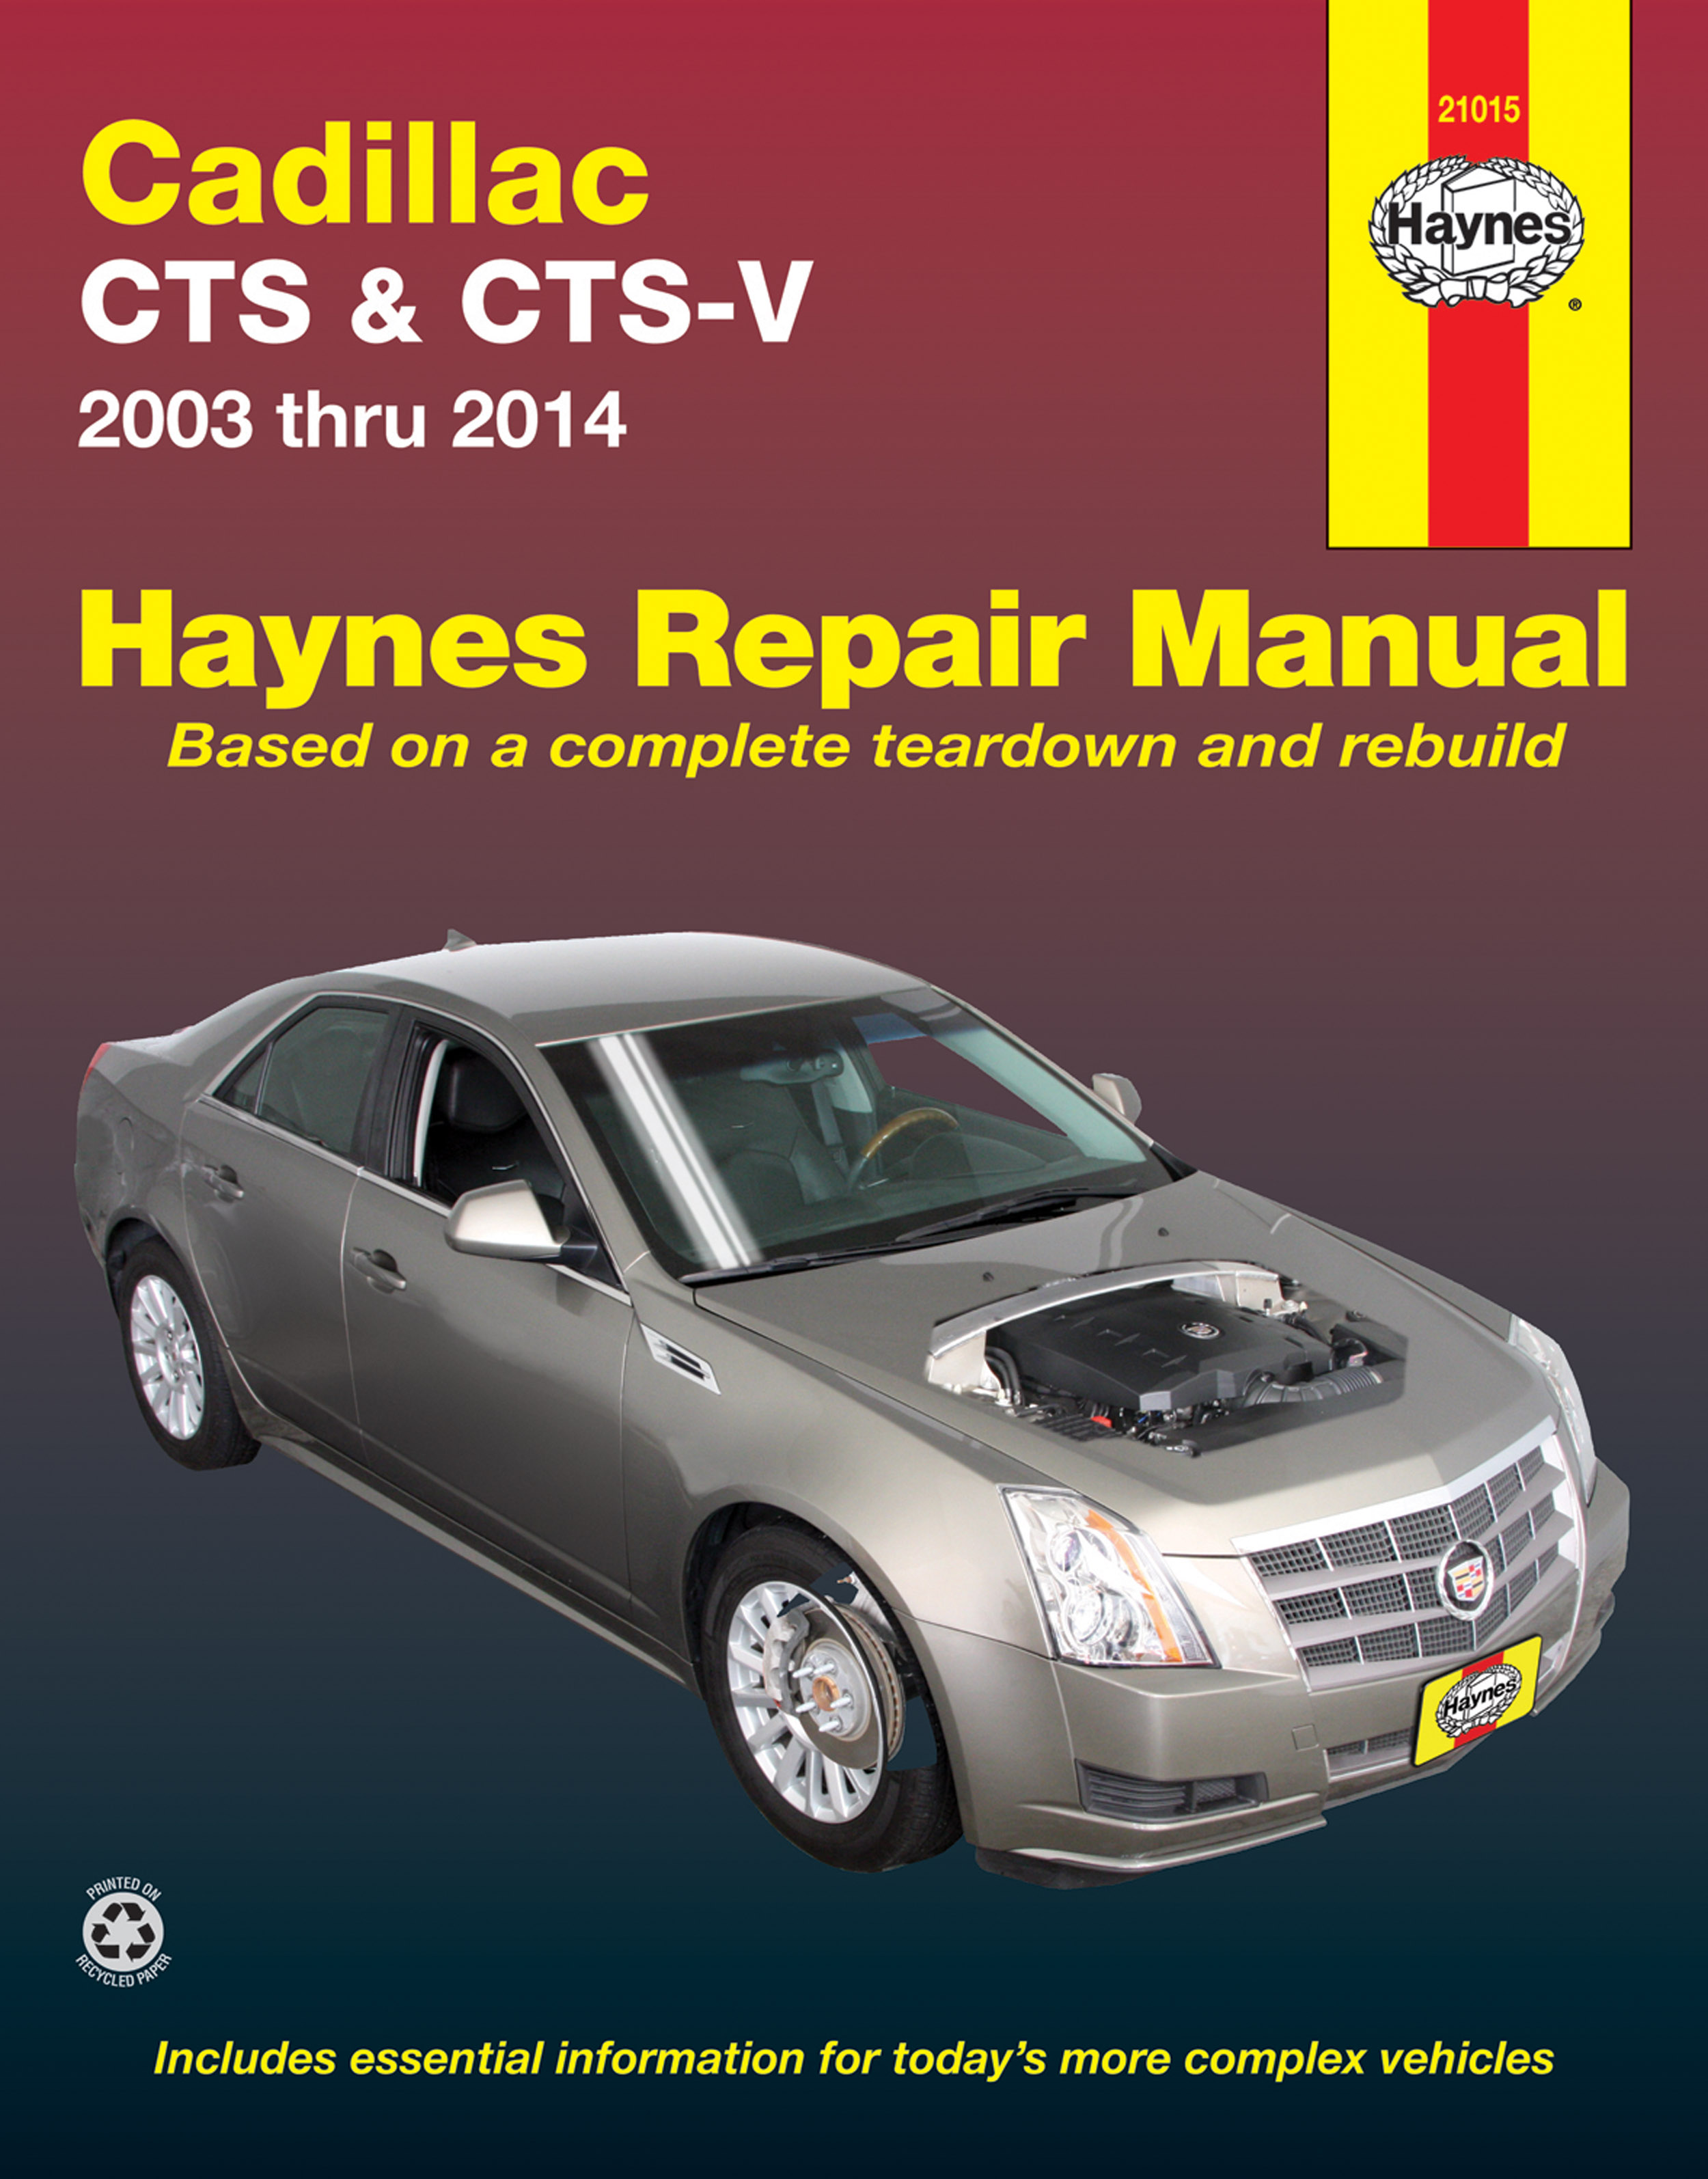 cadillac cts and cts v 03 14 haynes repair manual usa haynes enlarge cadillac cts